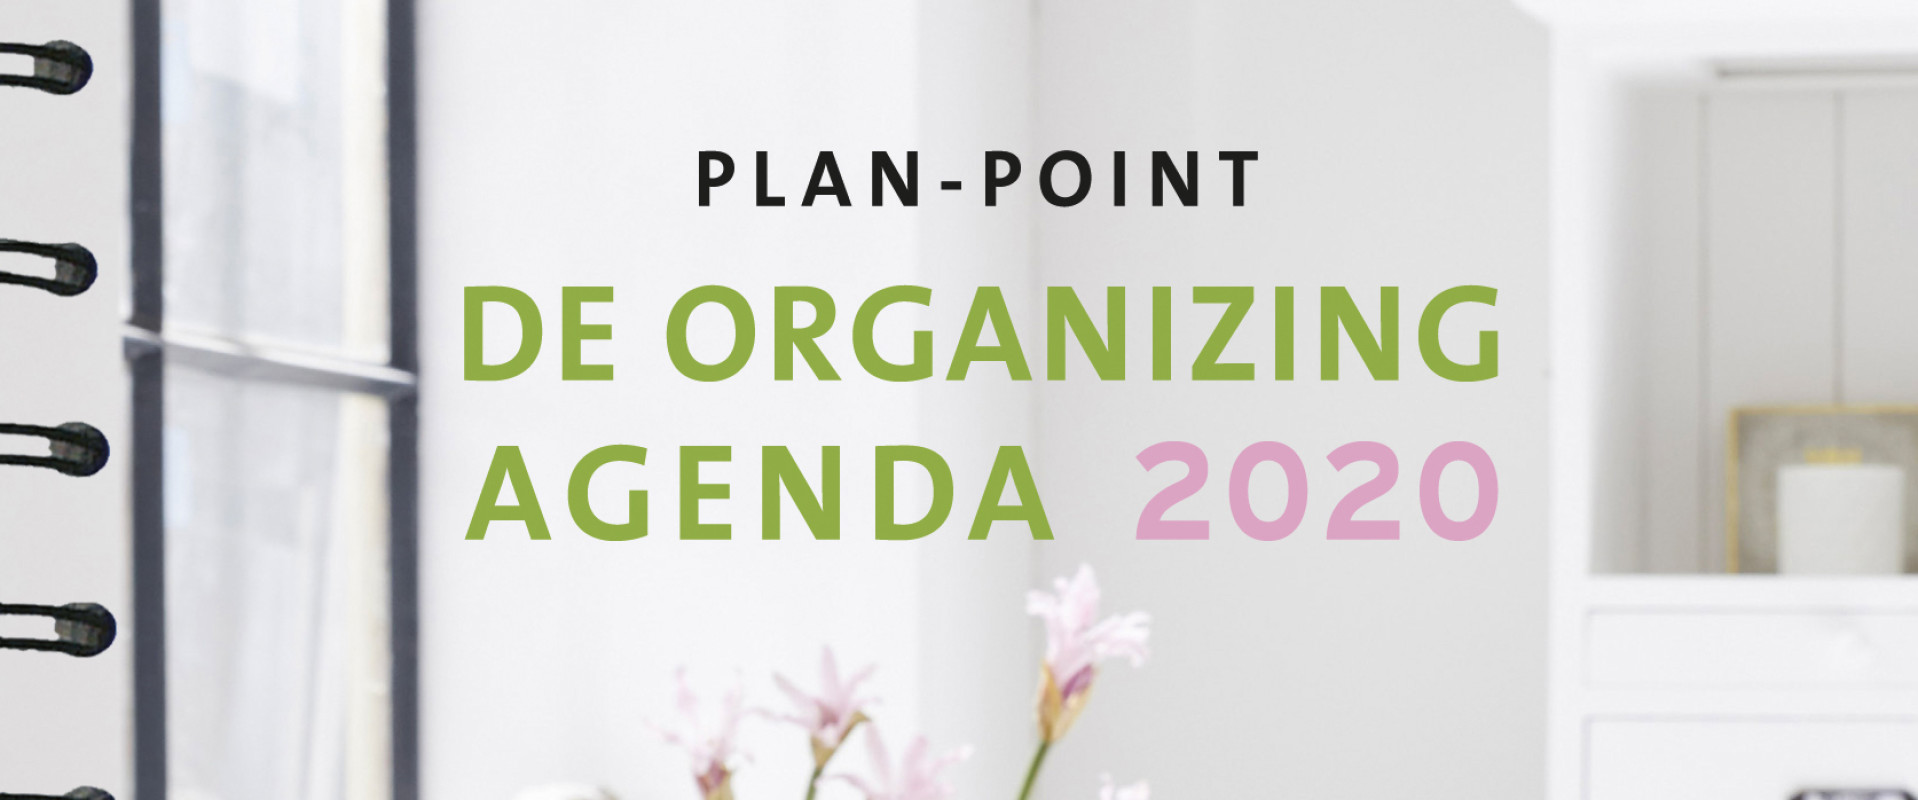 Organizing Agenda 2020 van Plan-Point